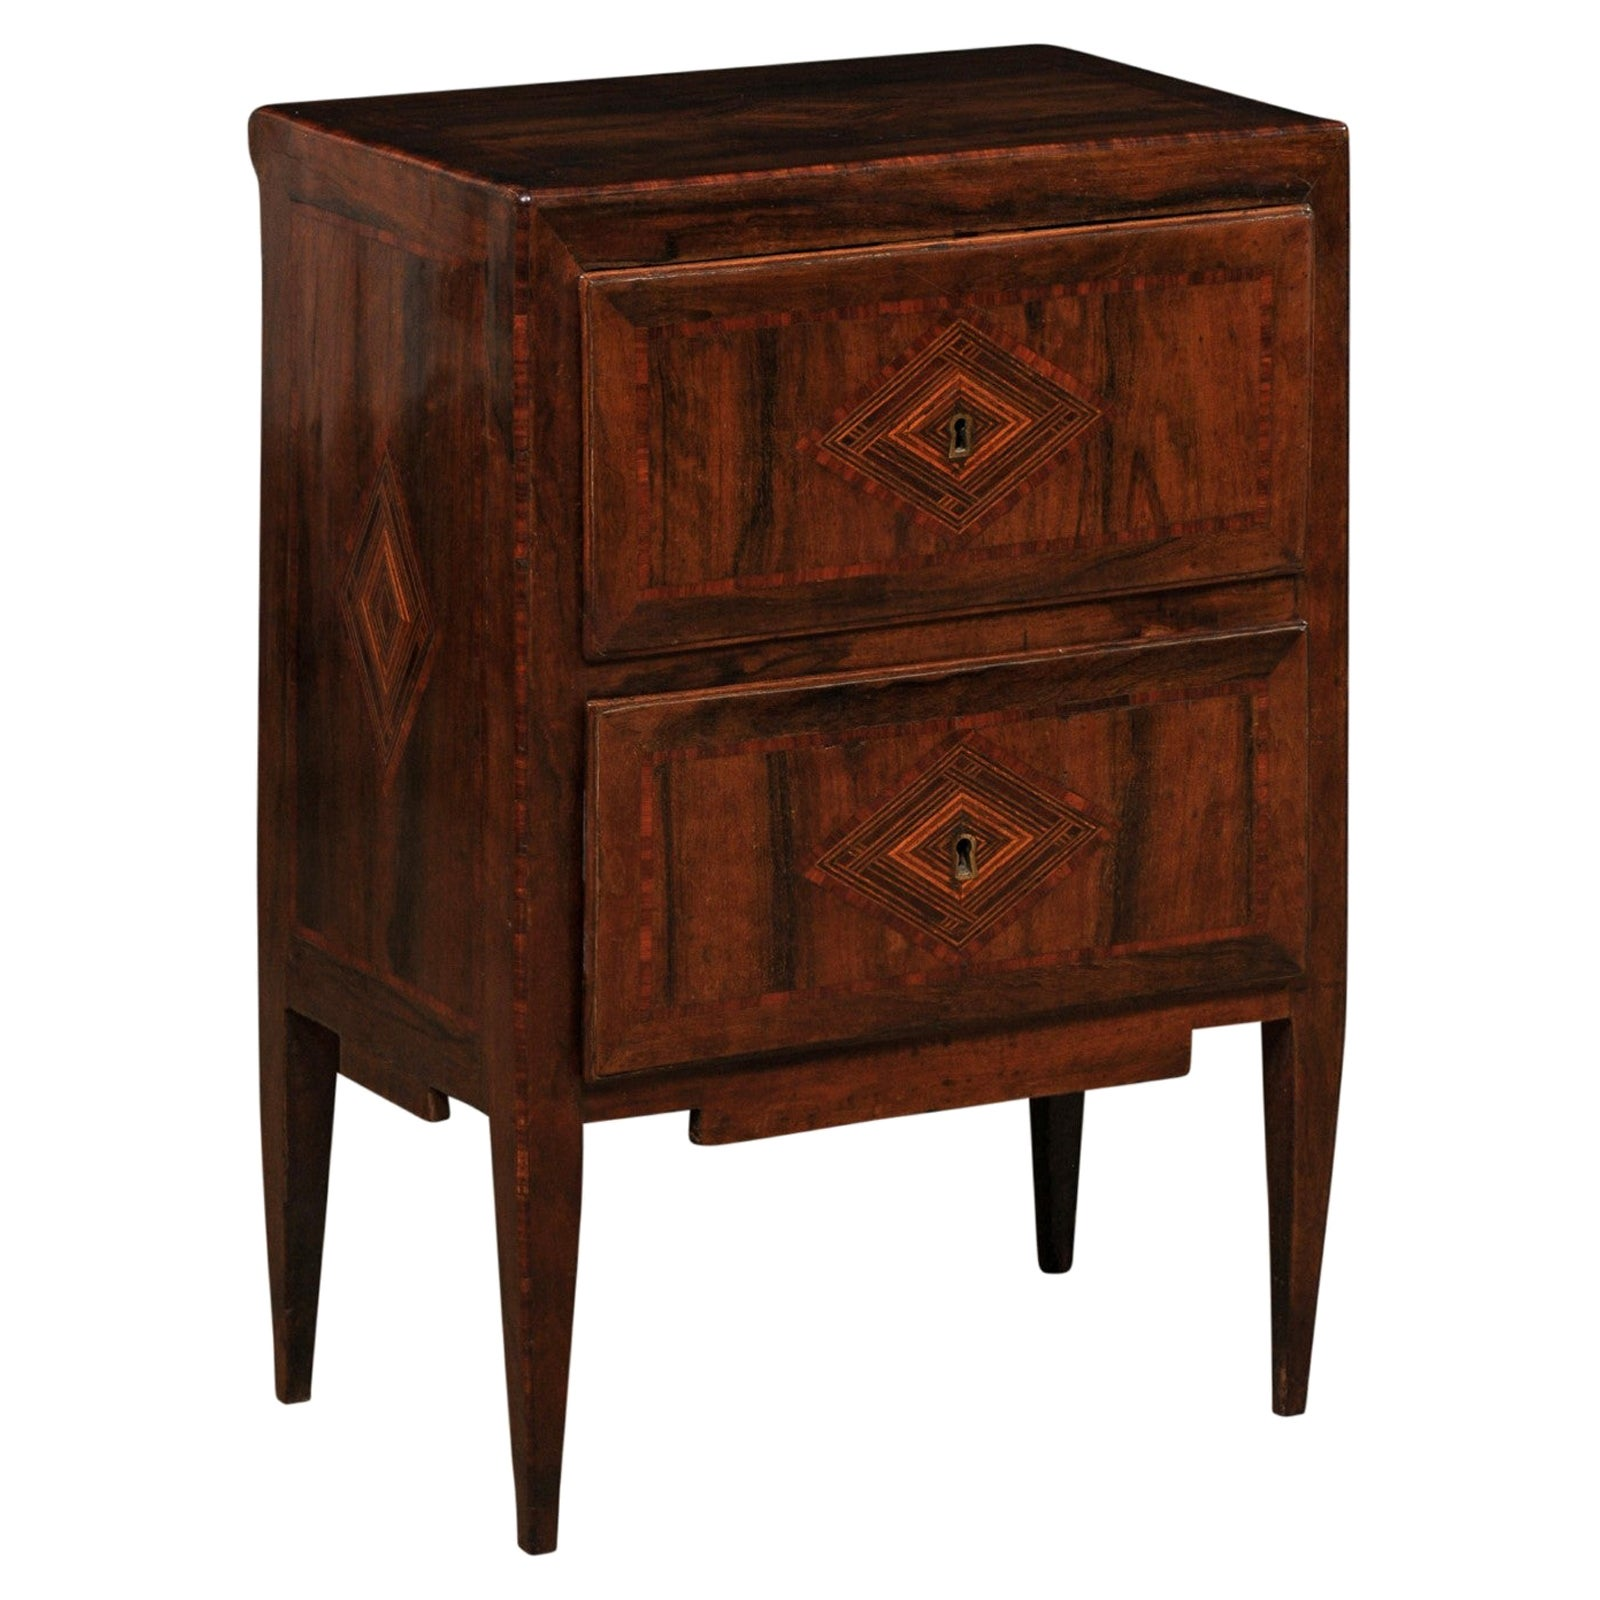 18th Century Italian Two-Drawer Raised Chest with Decorative Inlay and Banding